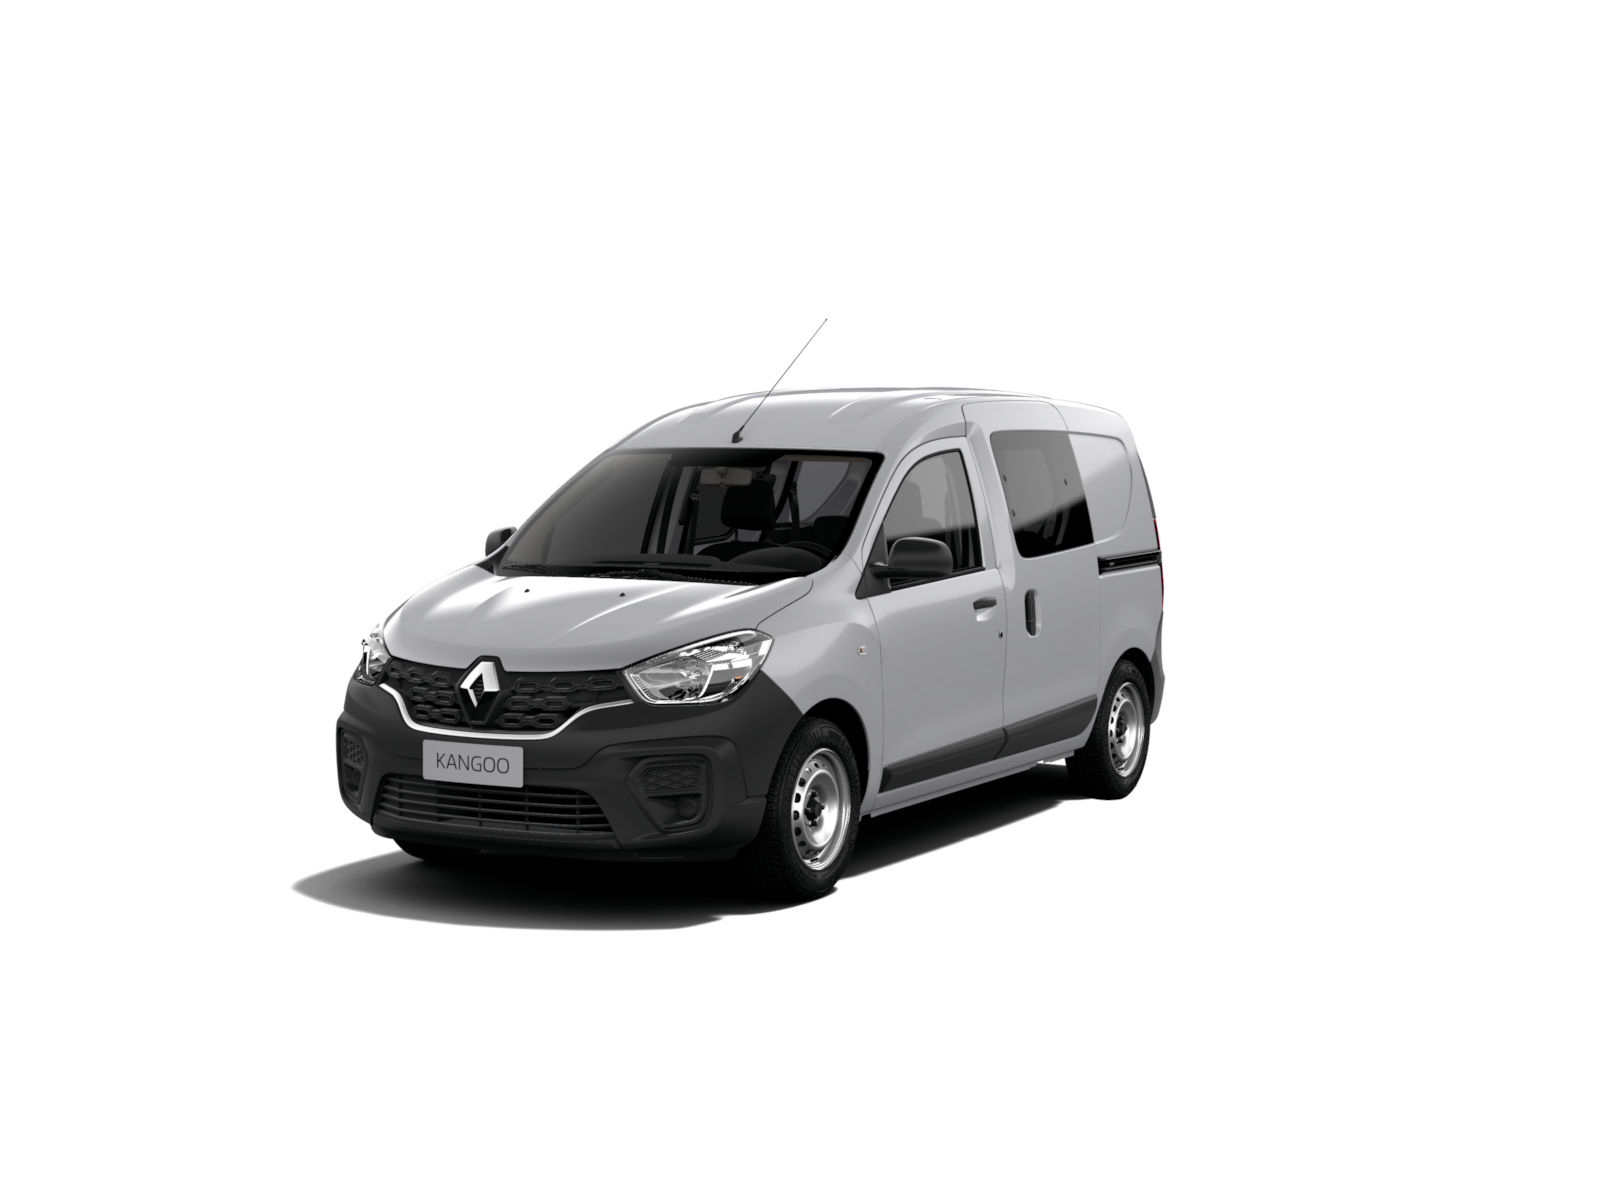 nouveau renault kangoo express 4 the automobilist. Black Bedroom Furniture Sets. Home Design Ideas